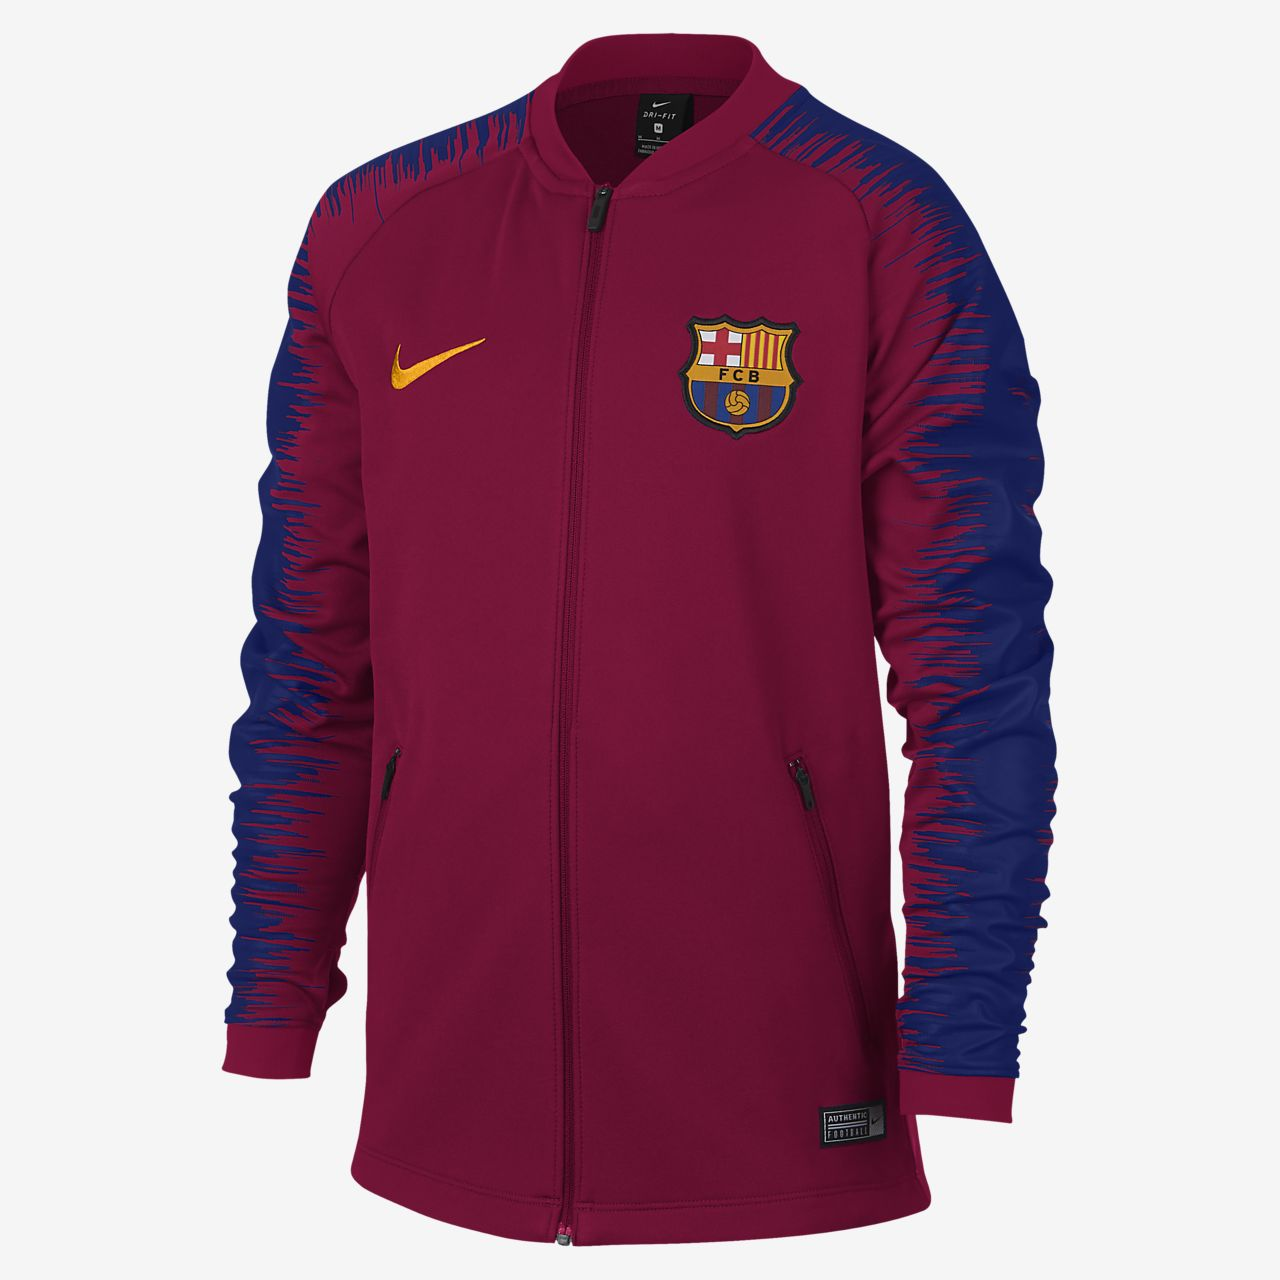 a5ff74319 FC Barcelona Anthem Older Kids  Football Jacket. Nike.com AU